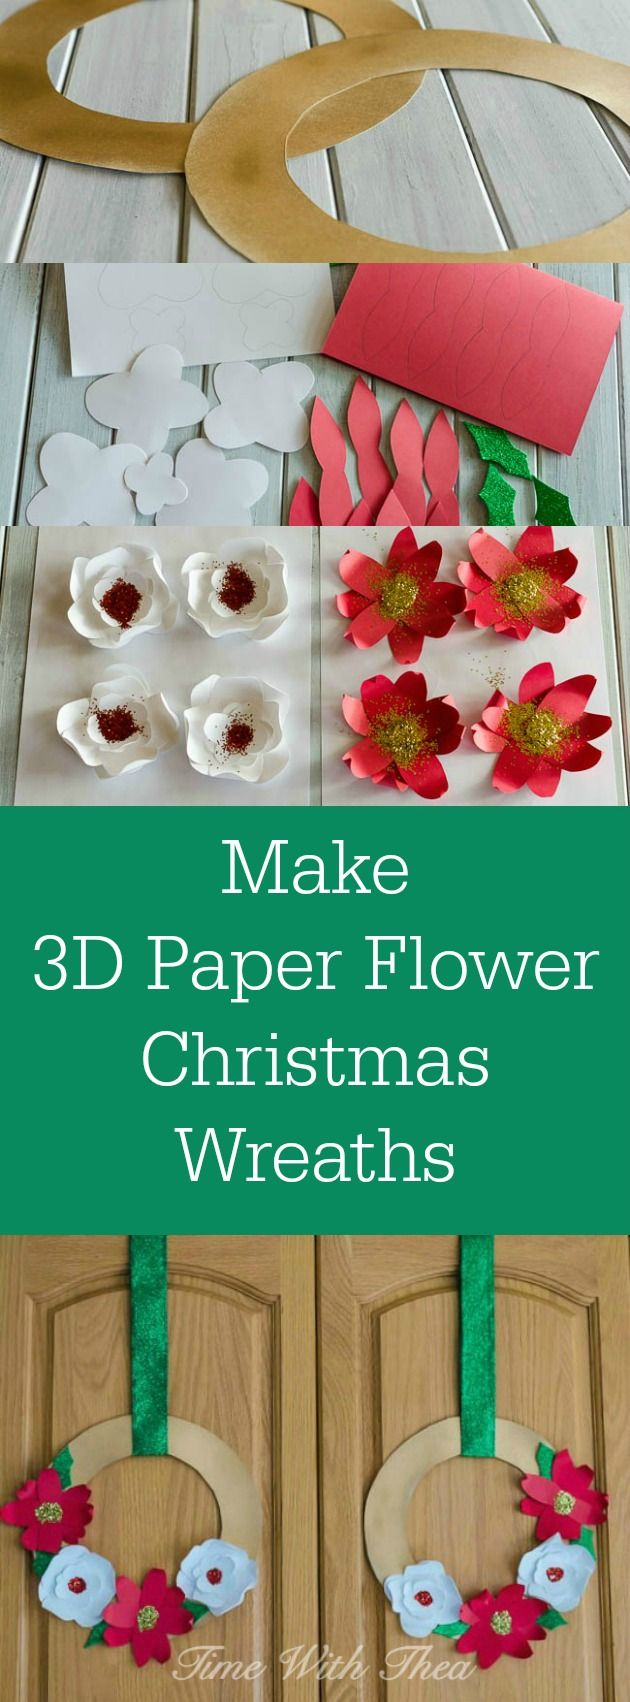 158 best christmas images on pinterest for Christmas paper crafts for adults